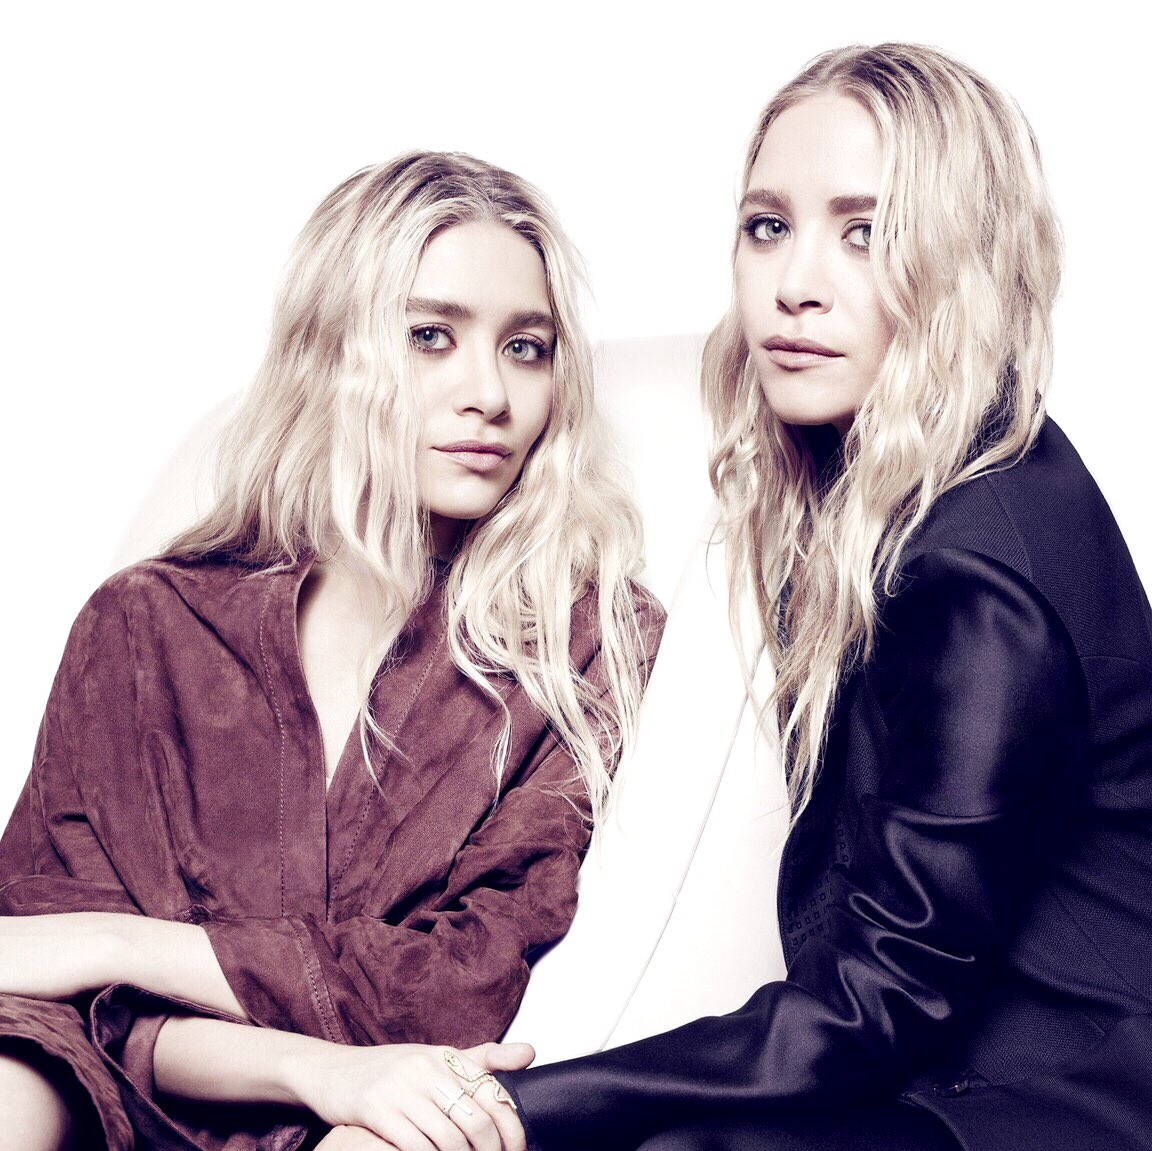 Happy birthday to the dynamic duo, Mary-Kate and Ashley Olsen!